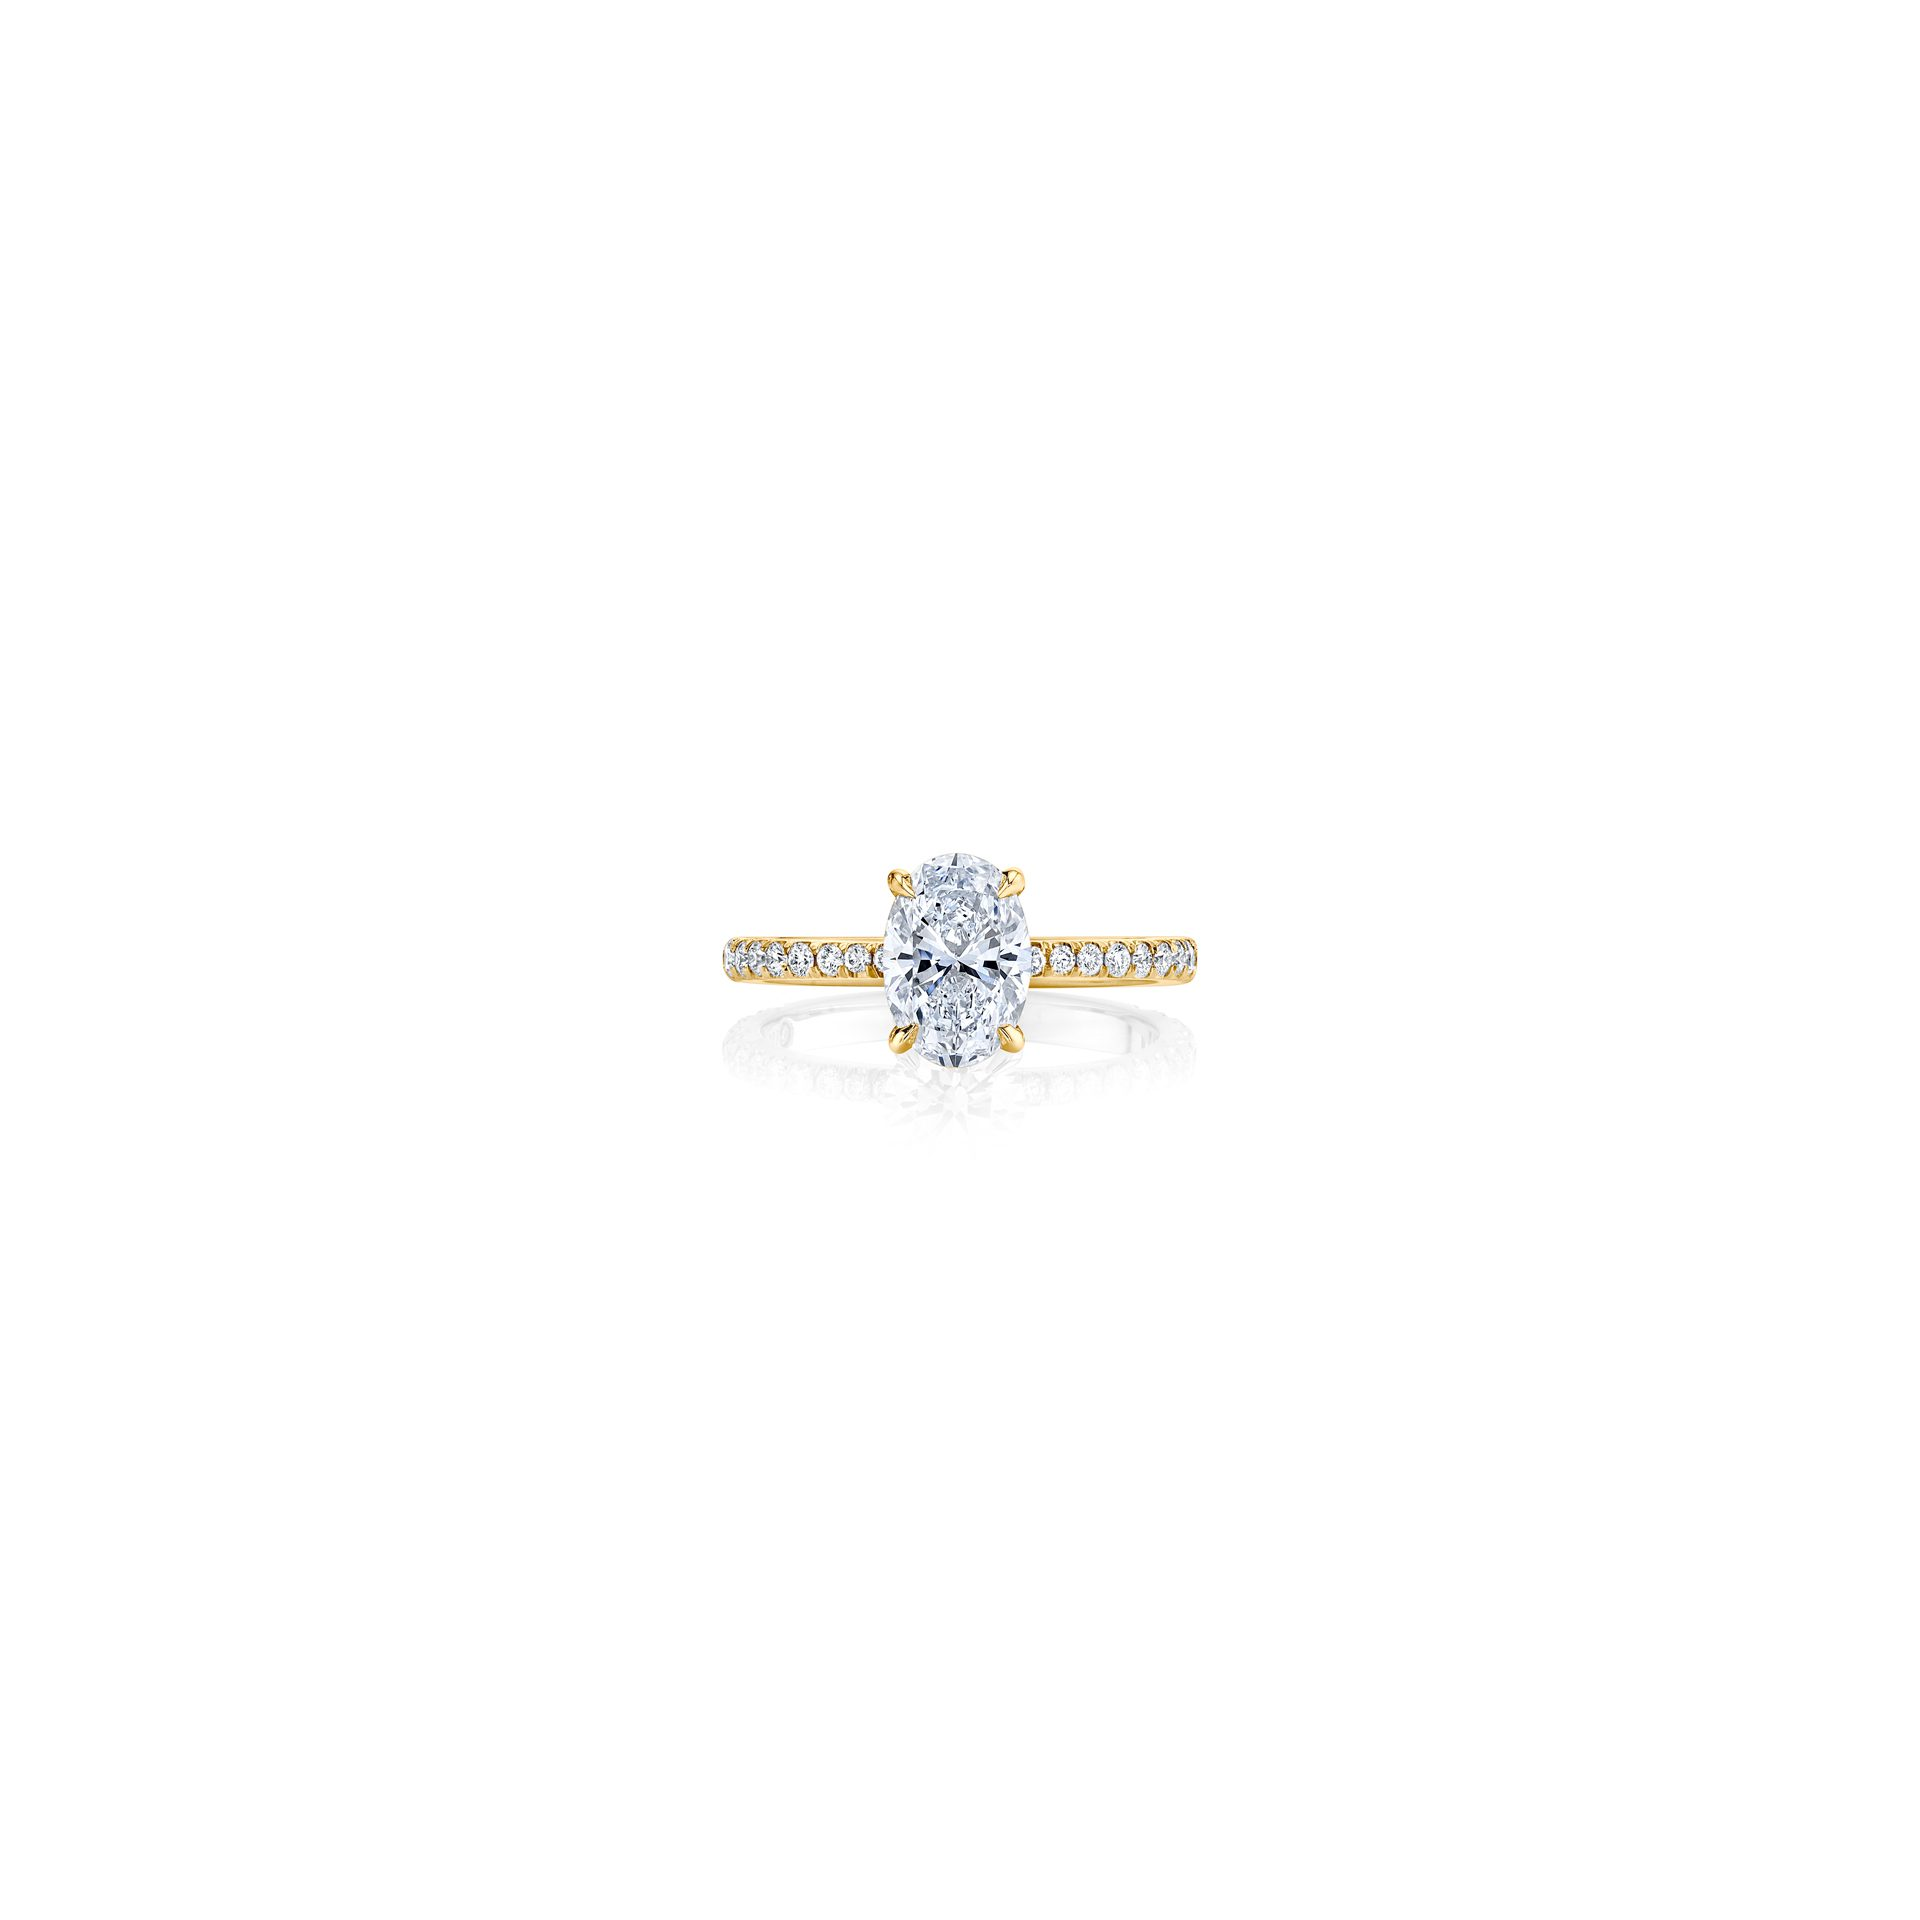 Eloise Oval Solitaire Engagement Ring with a diamond pavé band in 18k Yellow Gold Front View by Oui by Jean Dousset